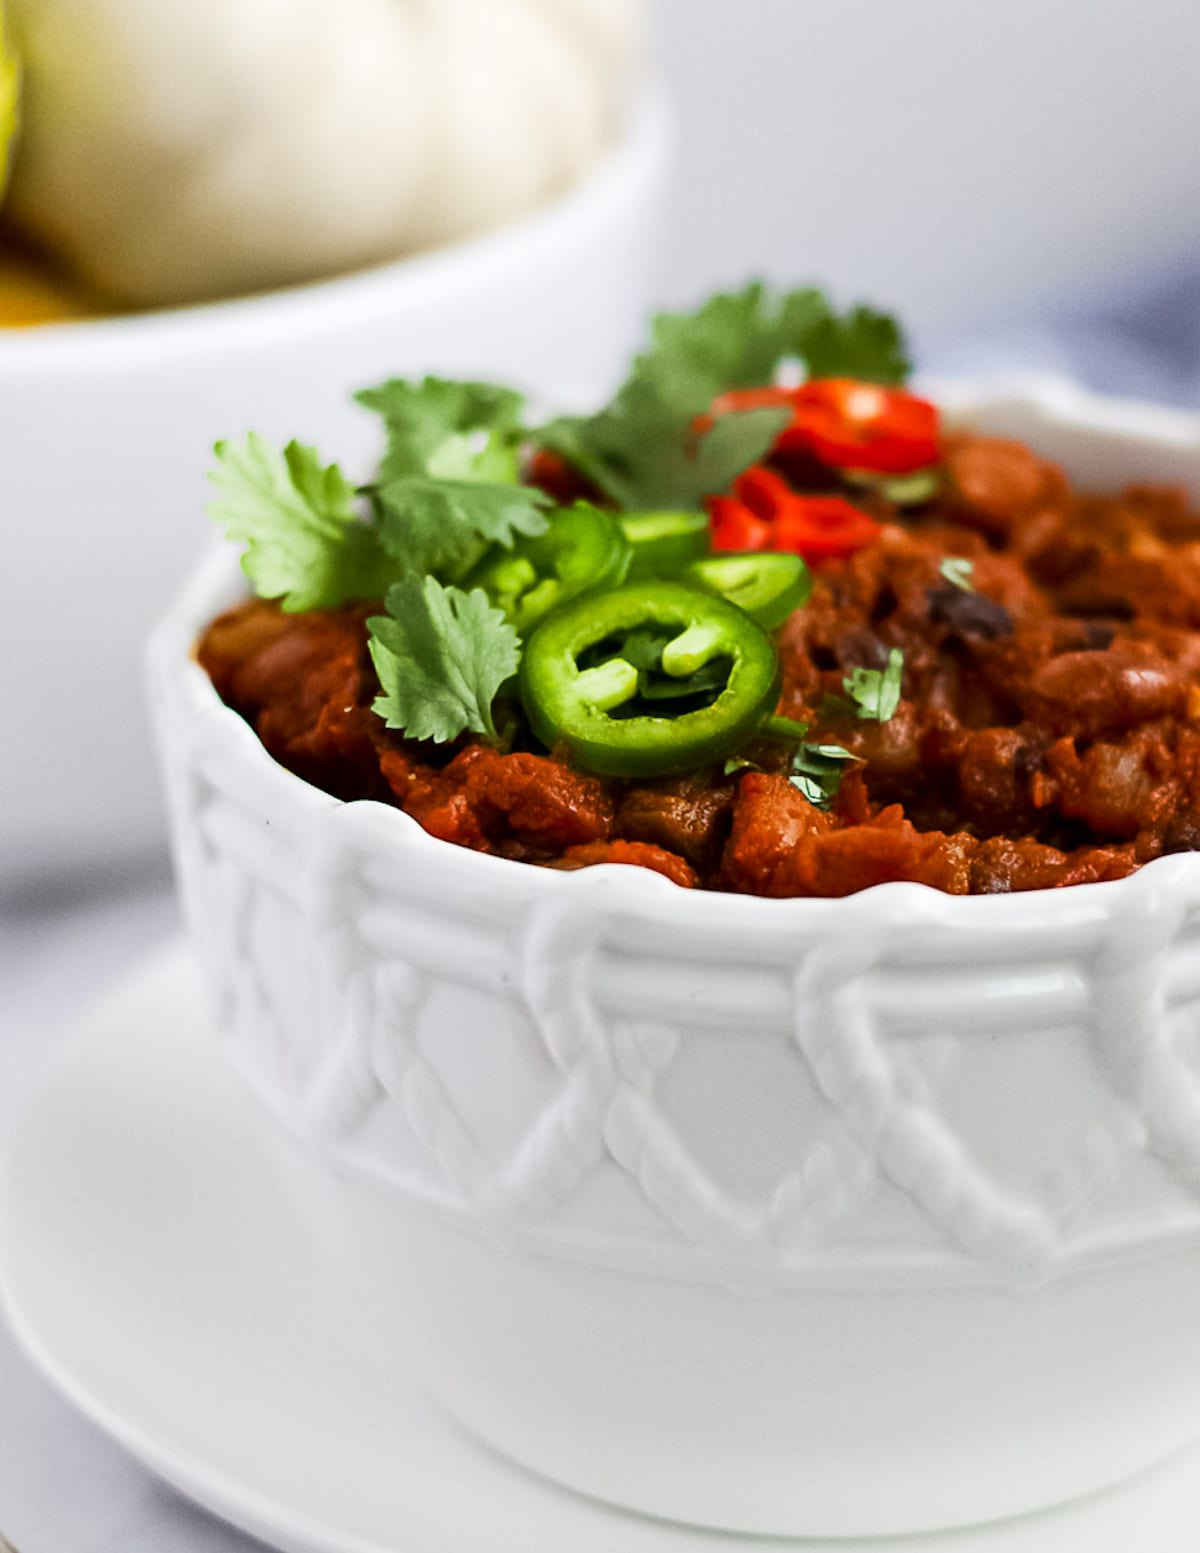 A close up shot of chili in a white patterned bowl. There are freshly sliced peppers and cilantro on top.